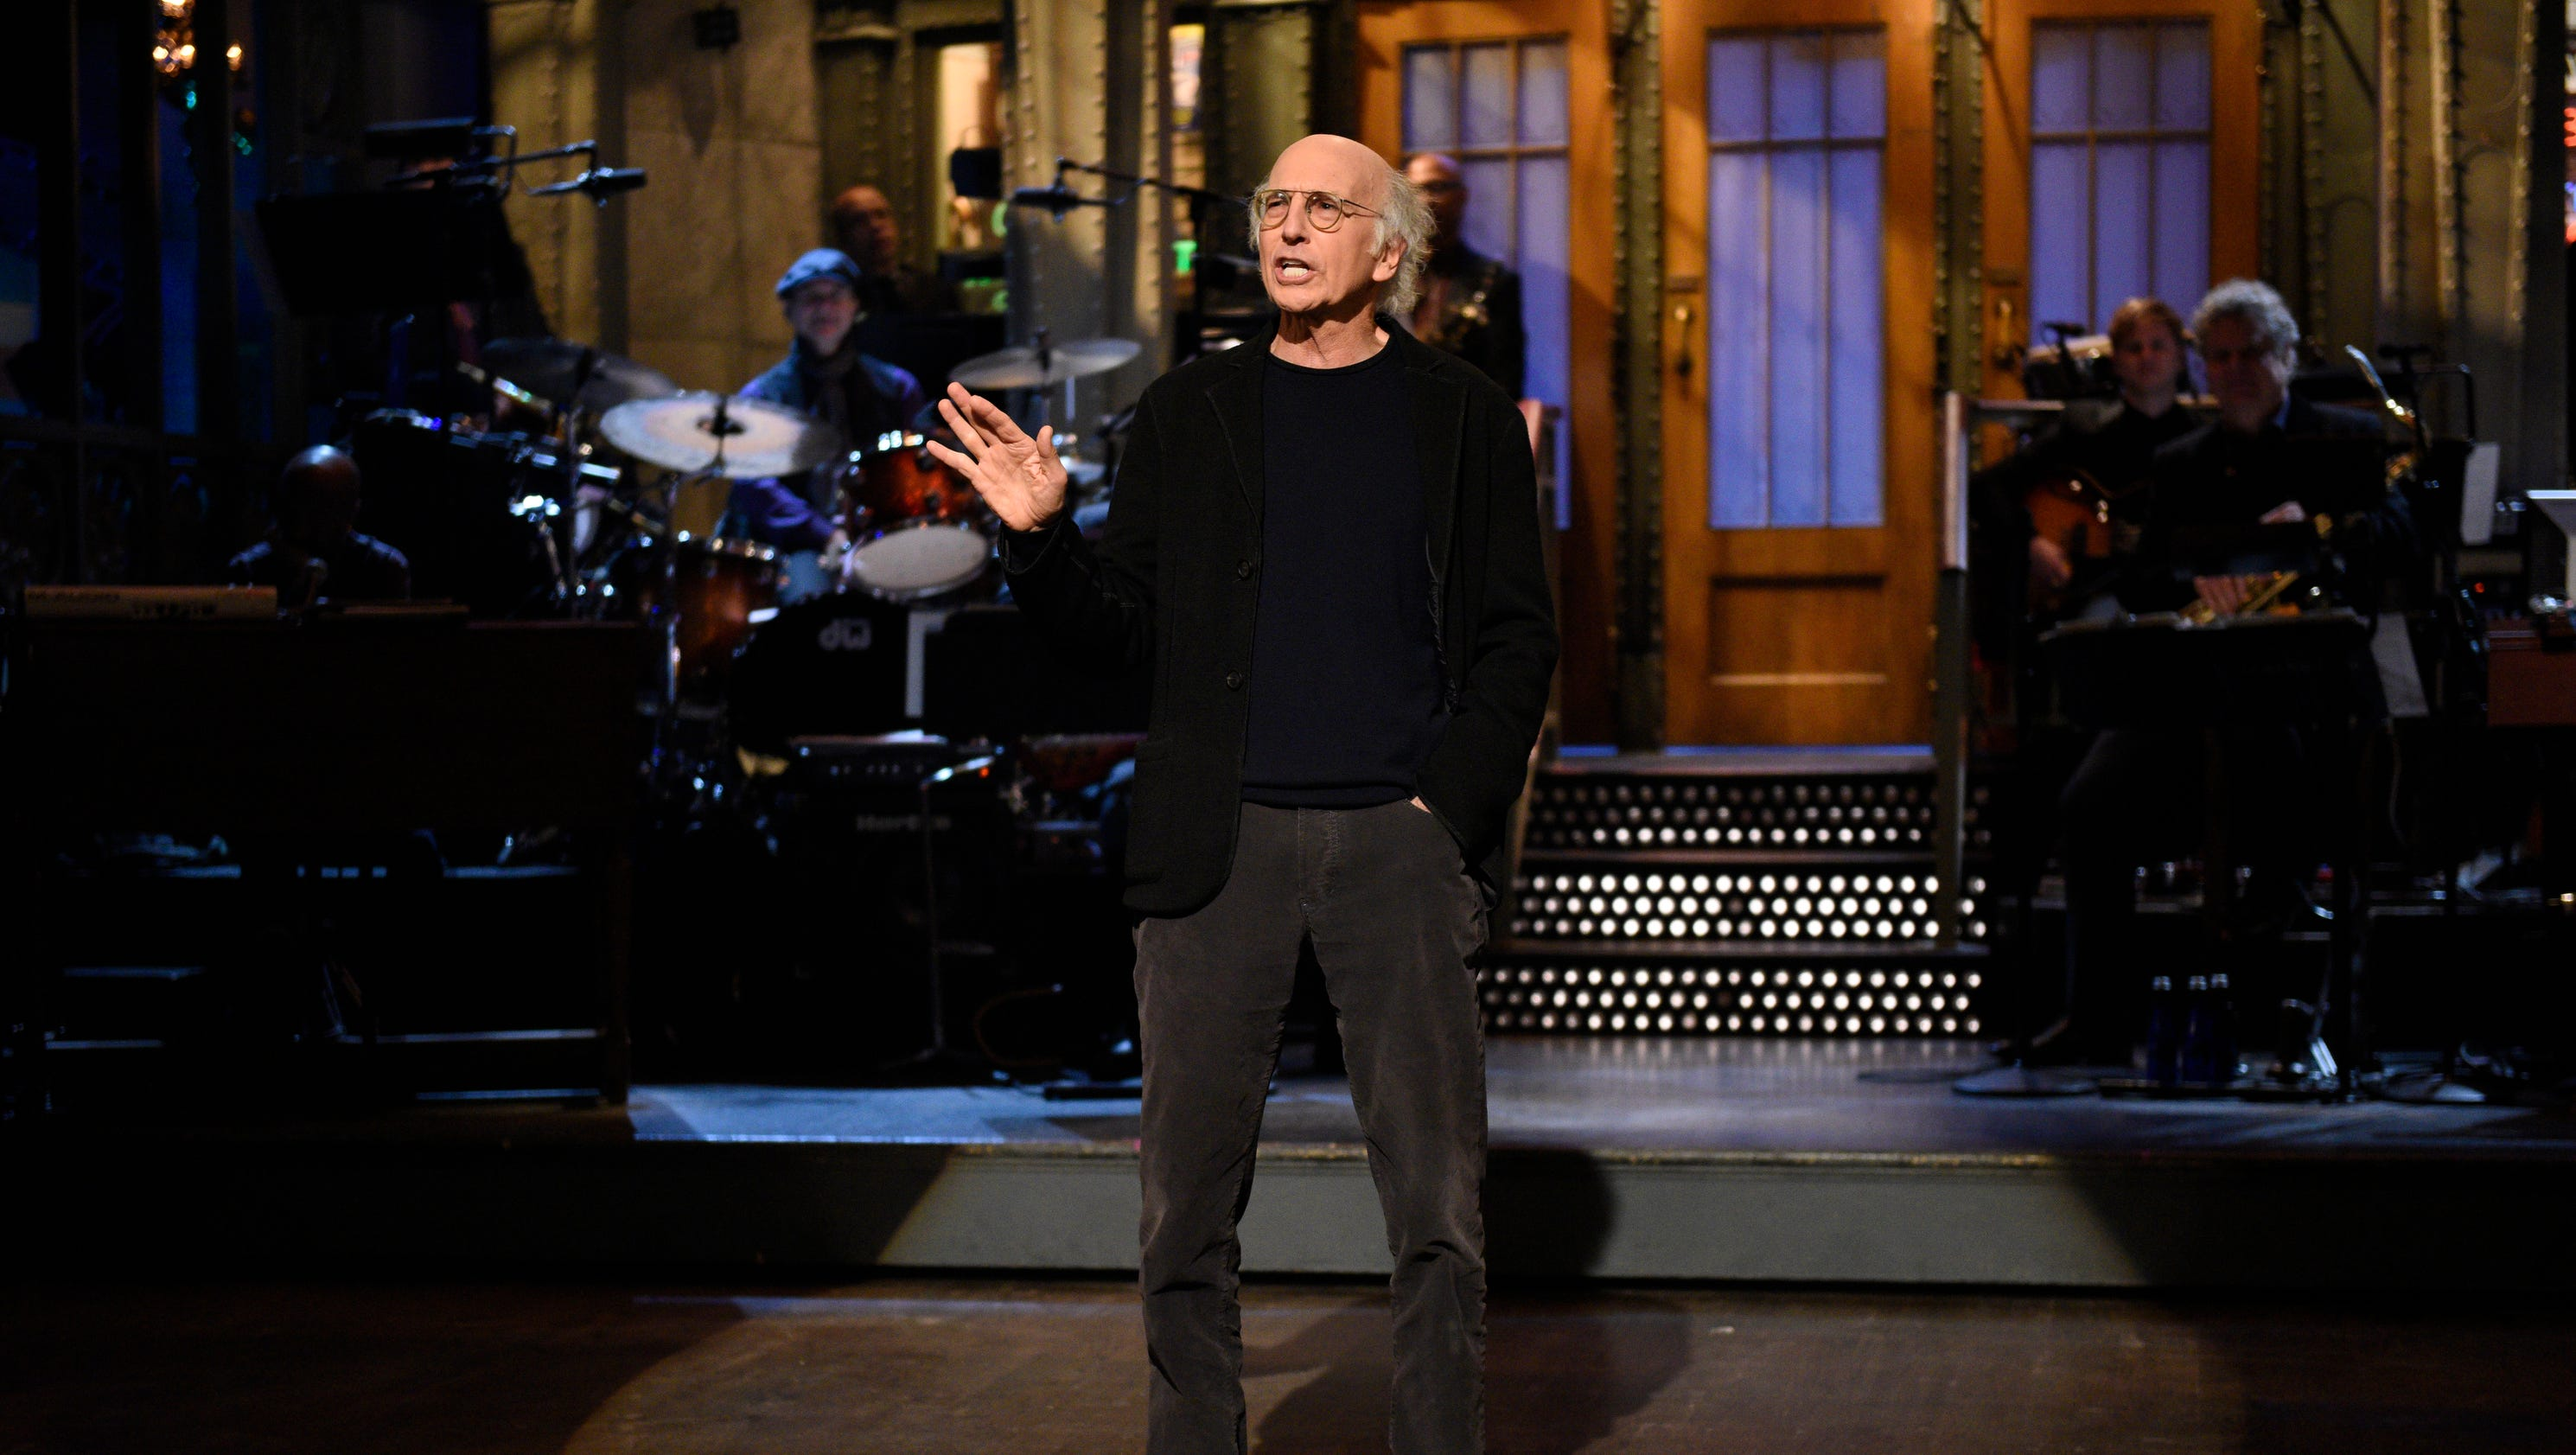 Larry David makes controversial concentration camp joke in 'Saturday Night Live' monologue